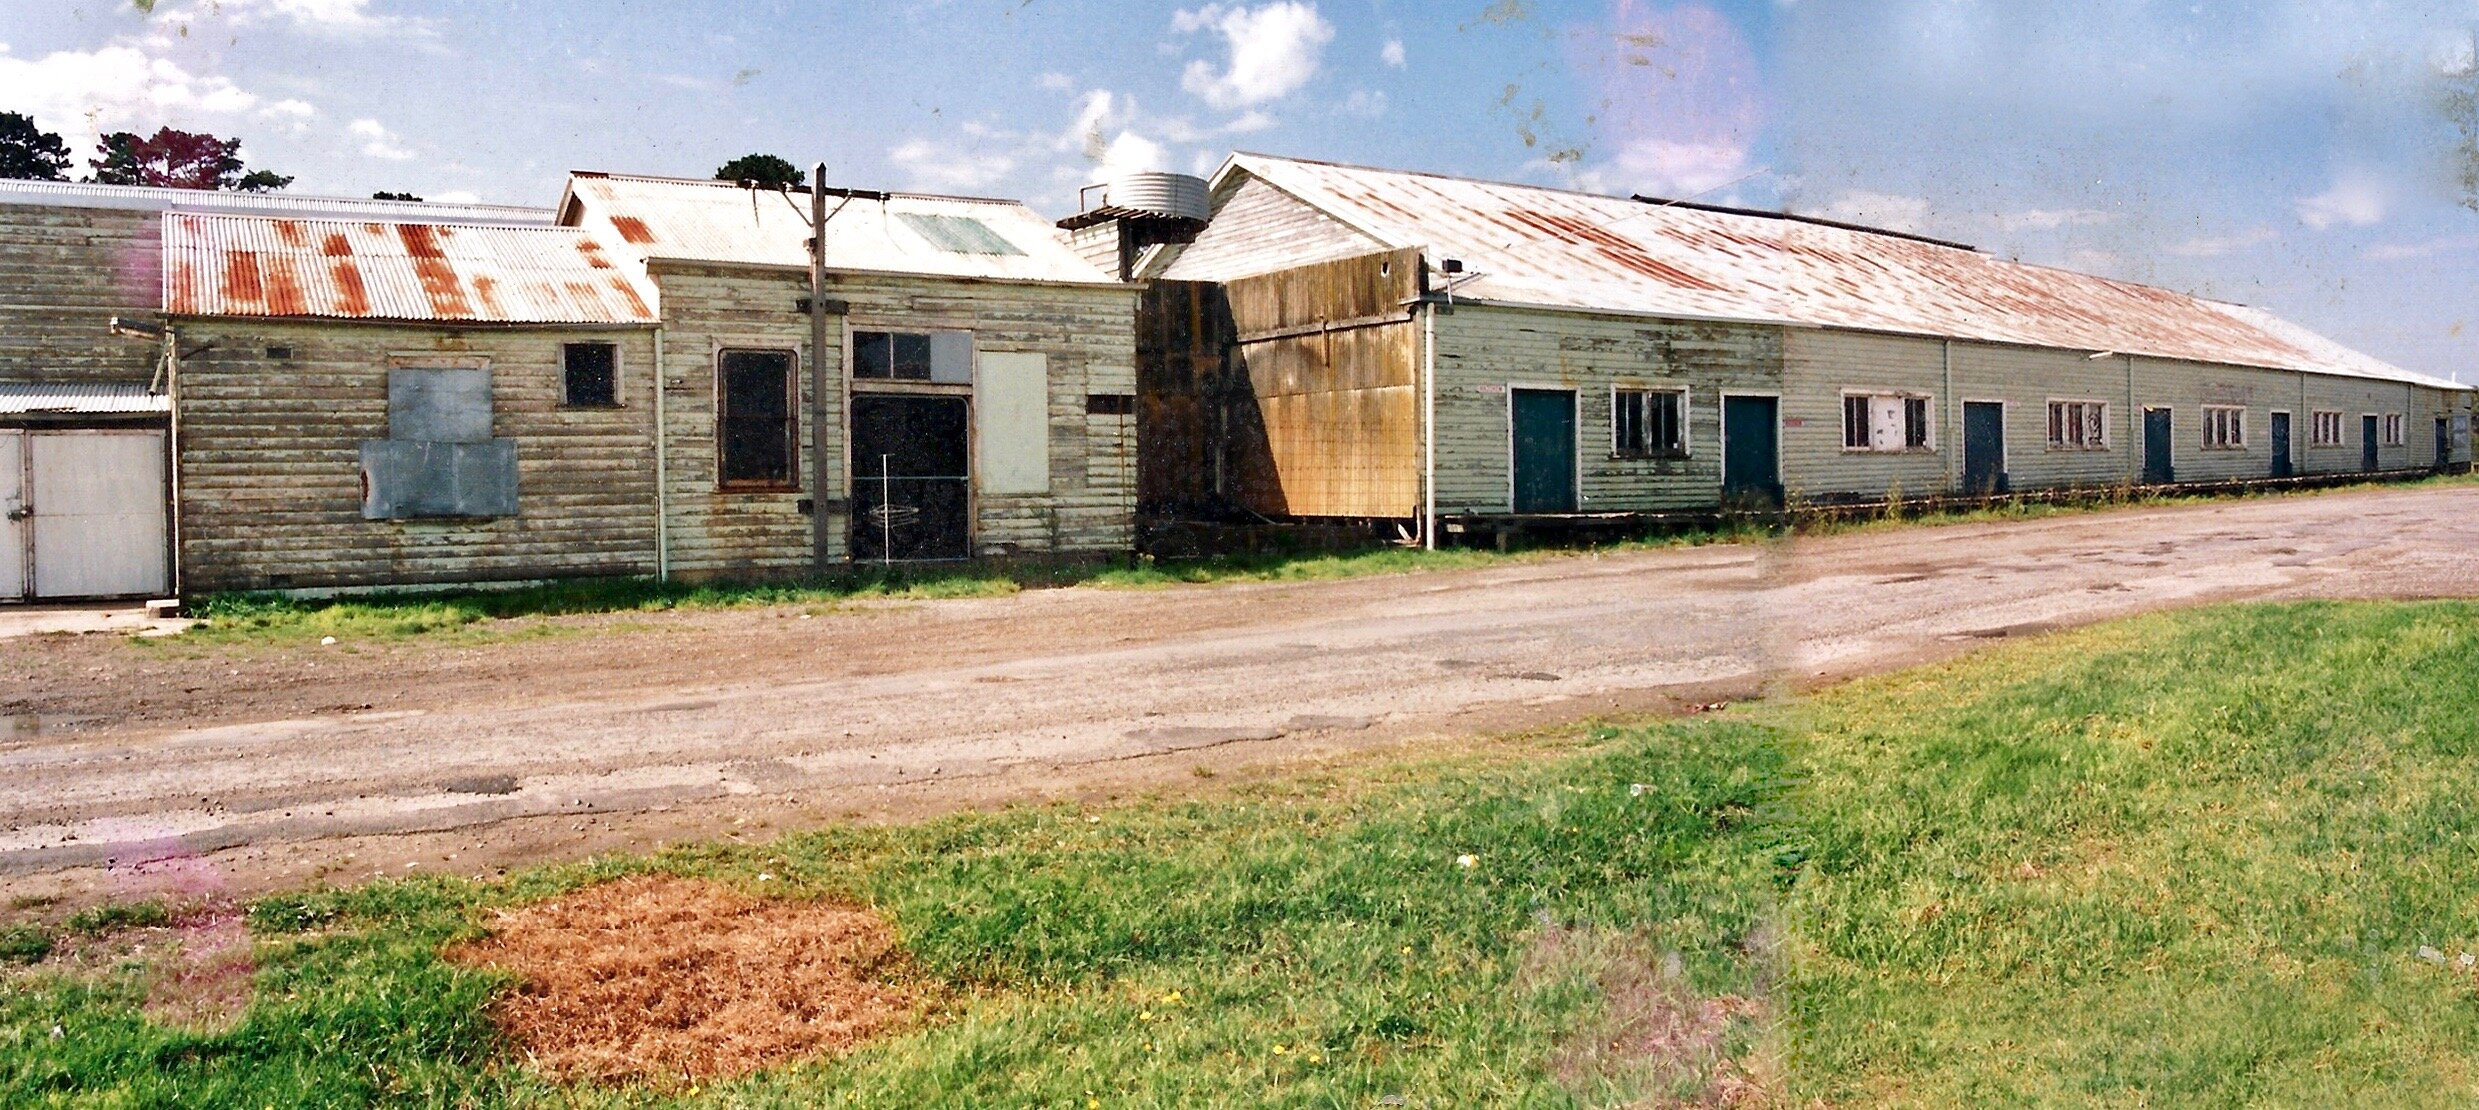 Peacock Road side of the building. 1993 before renovations.